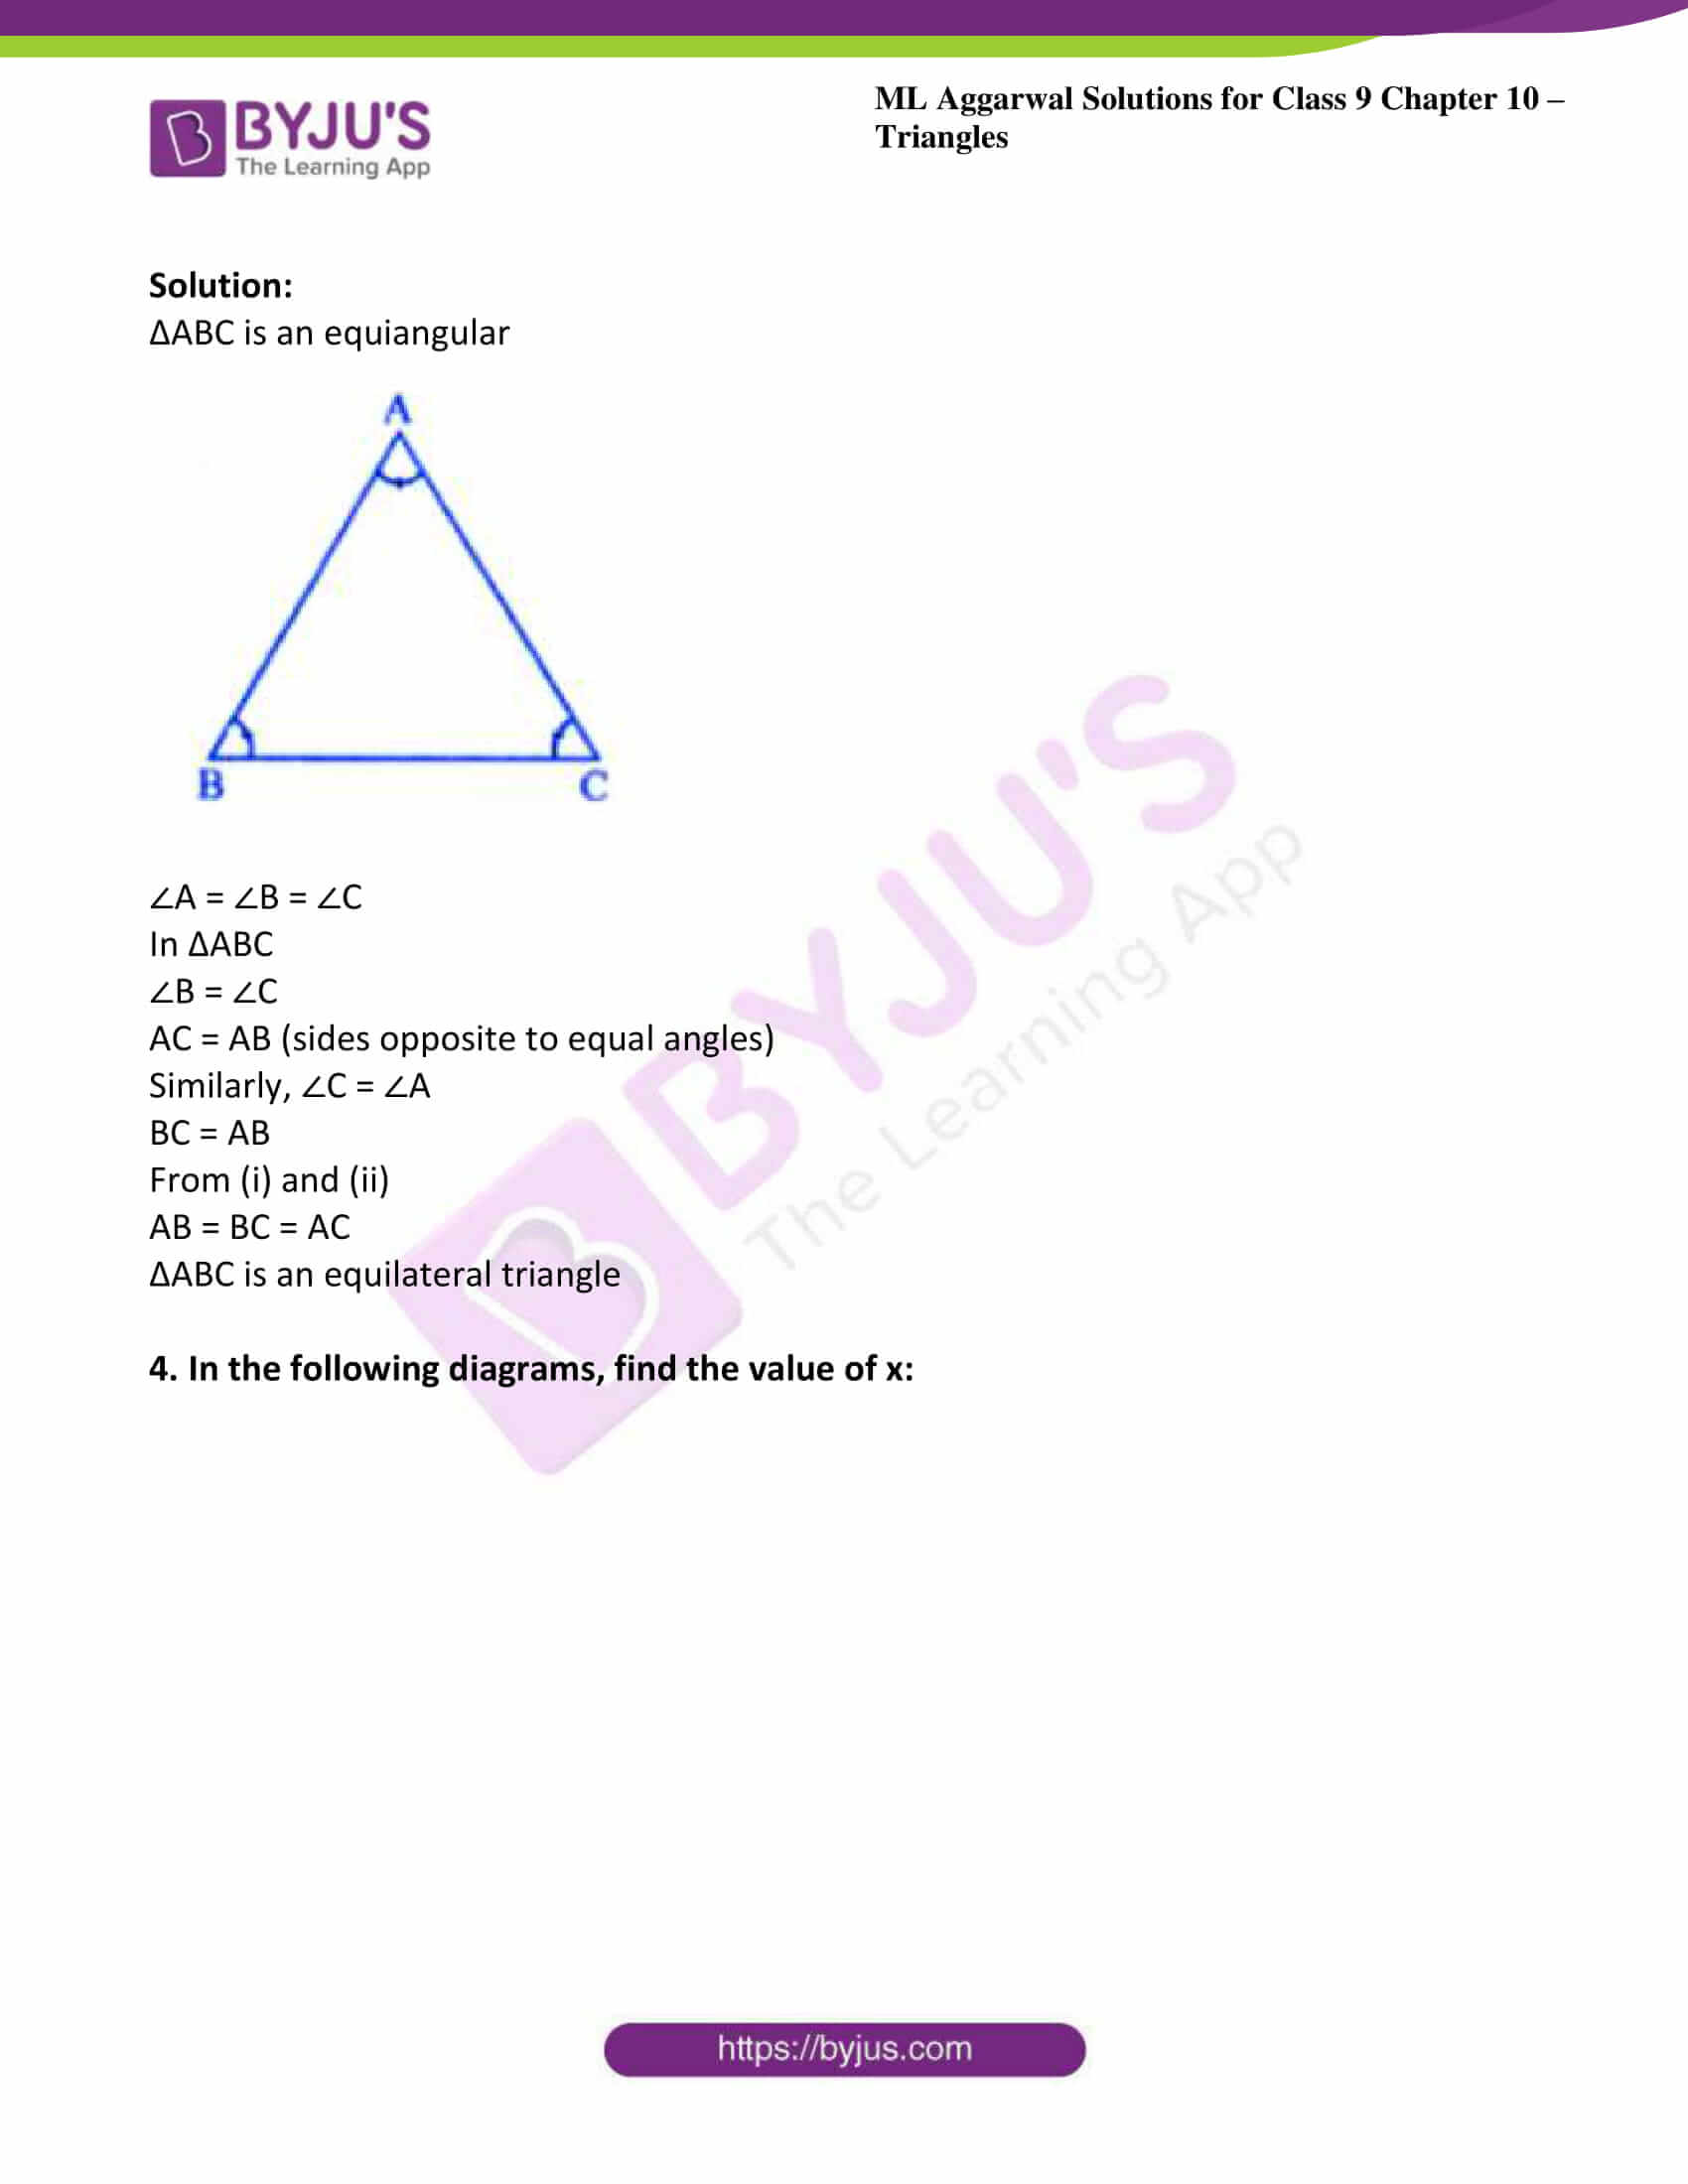 ml aggarwal solutions for class 9 maths chapter 10 16